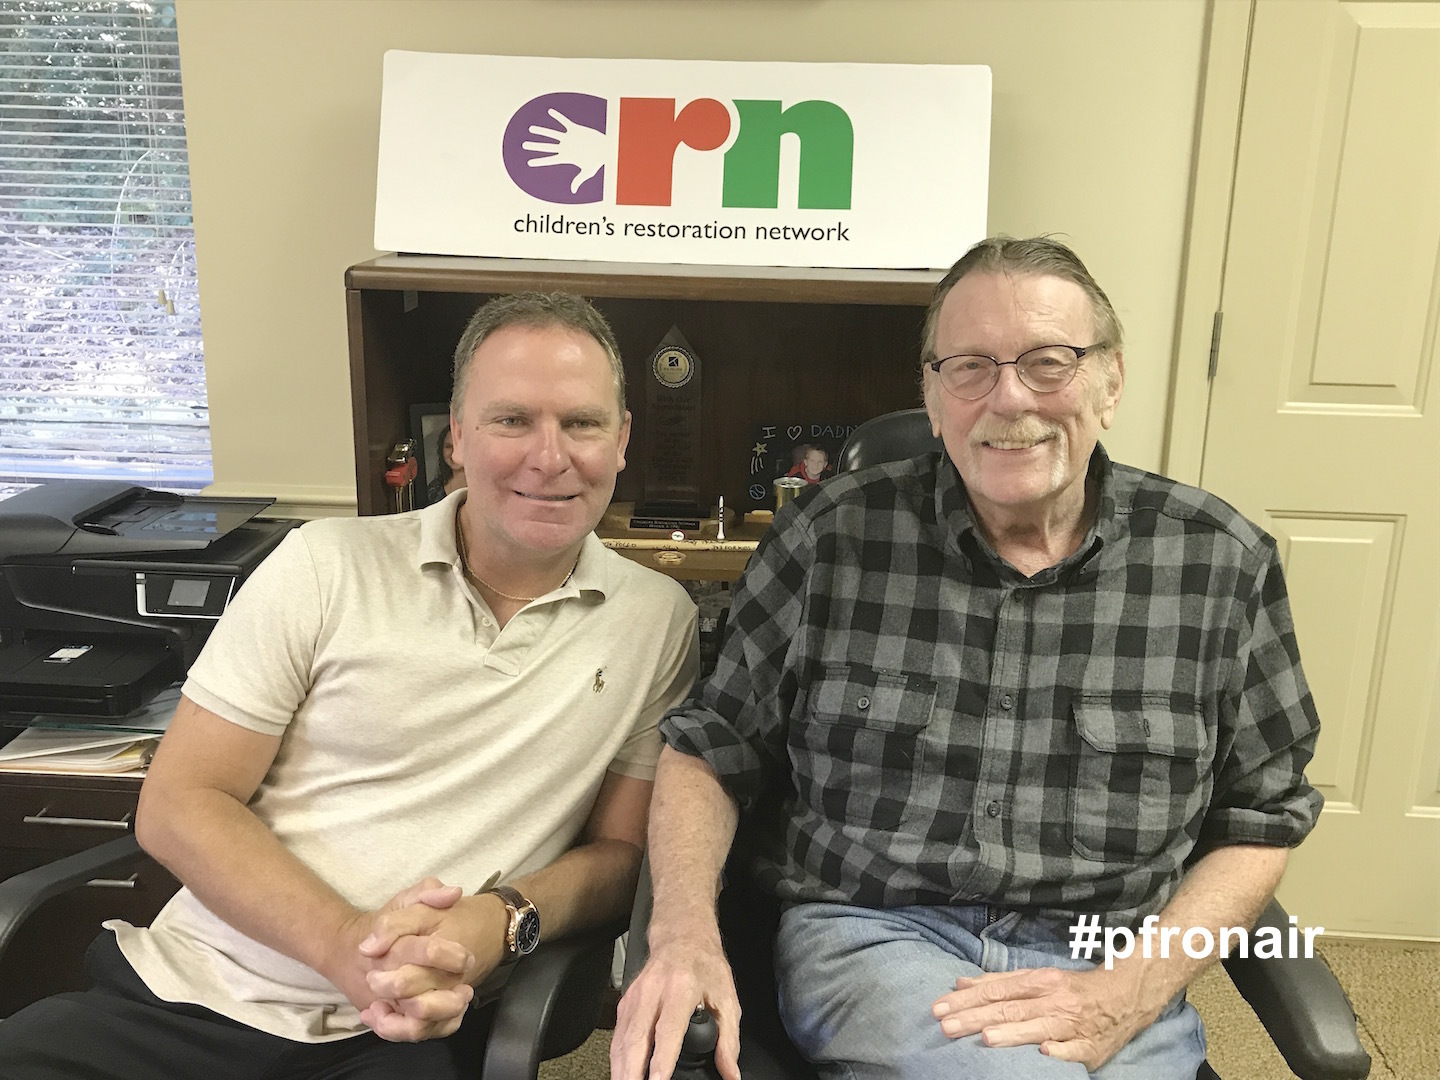 Cliff Kinsey and Jim Cox